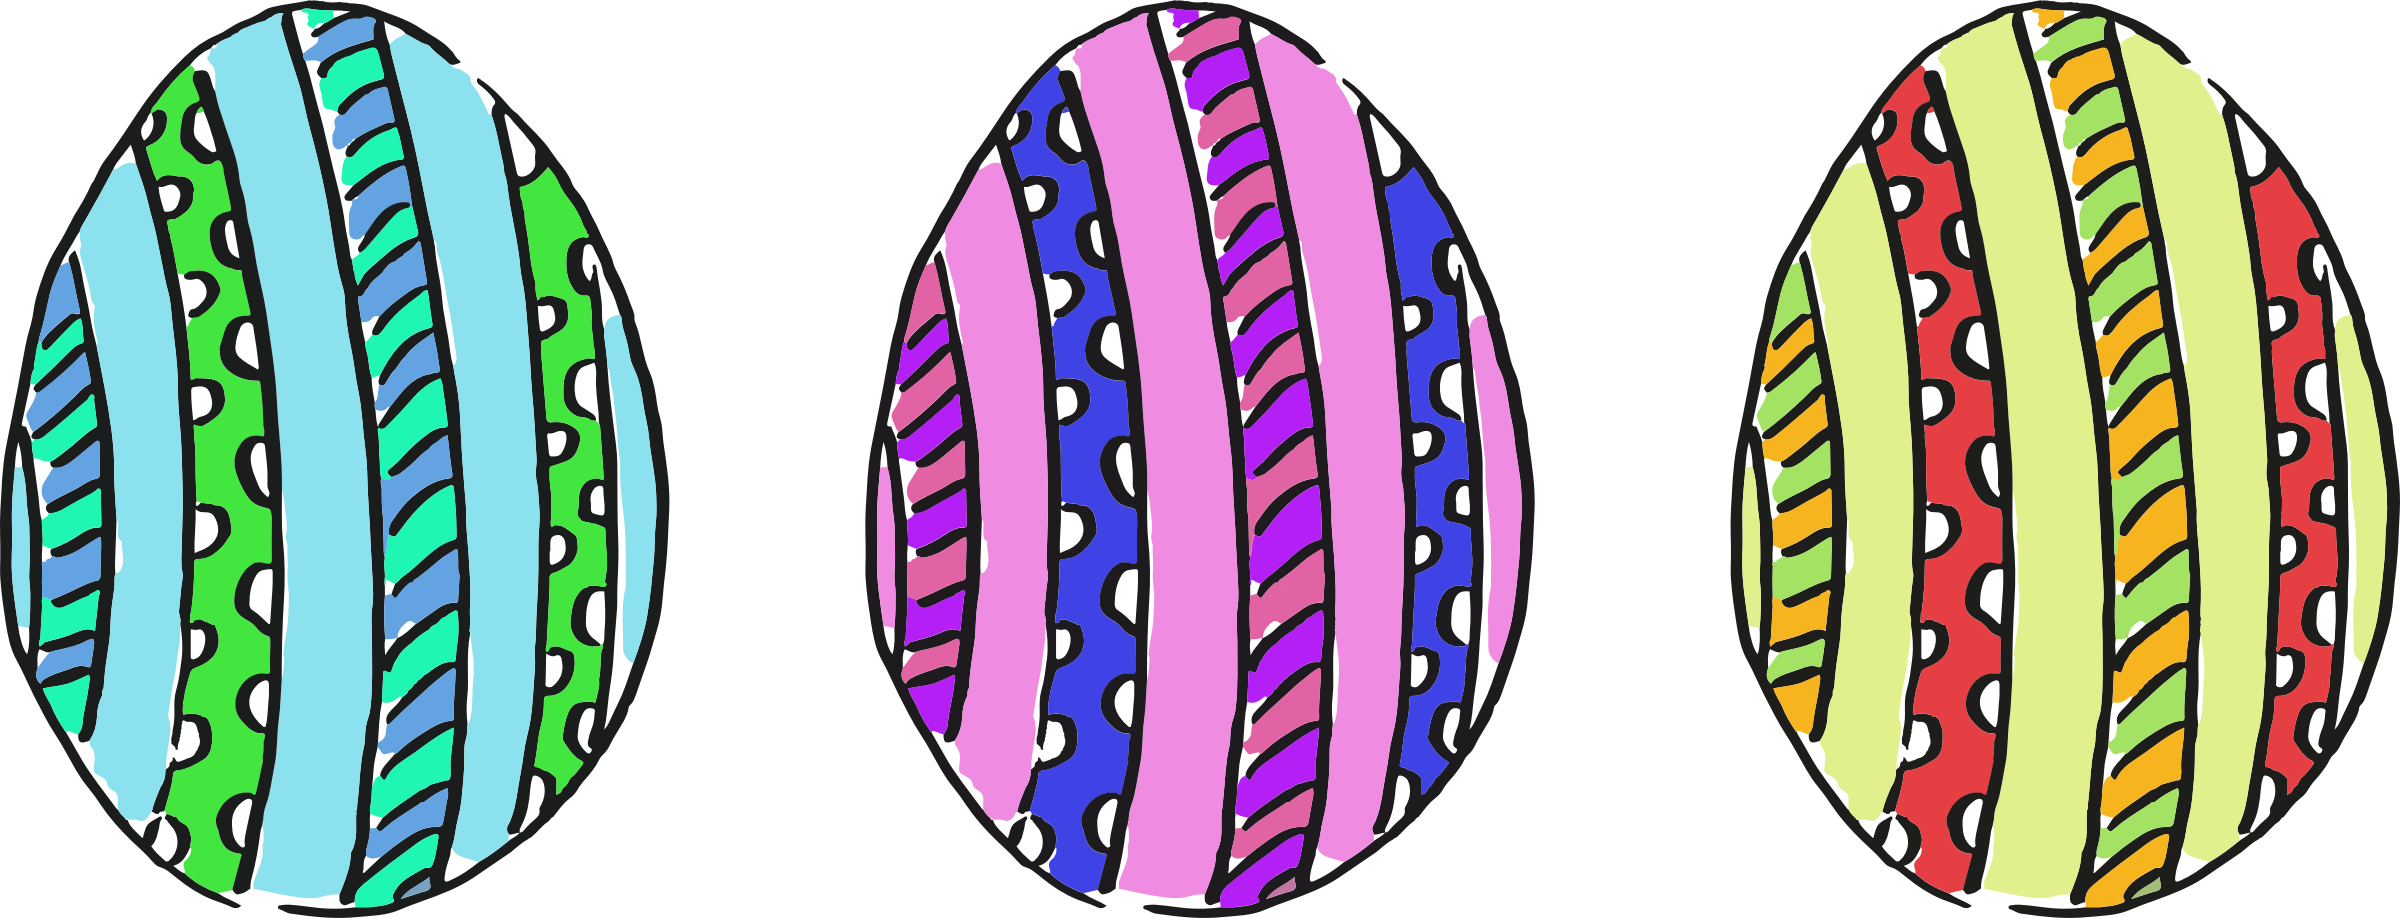 Easter eggs 9 by Firkin